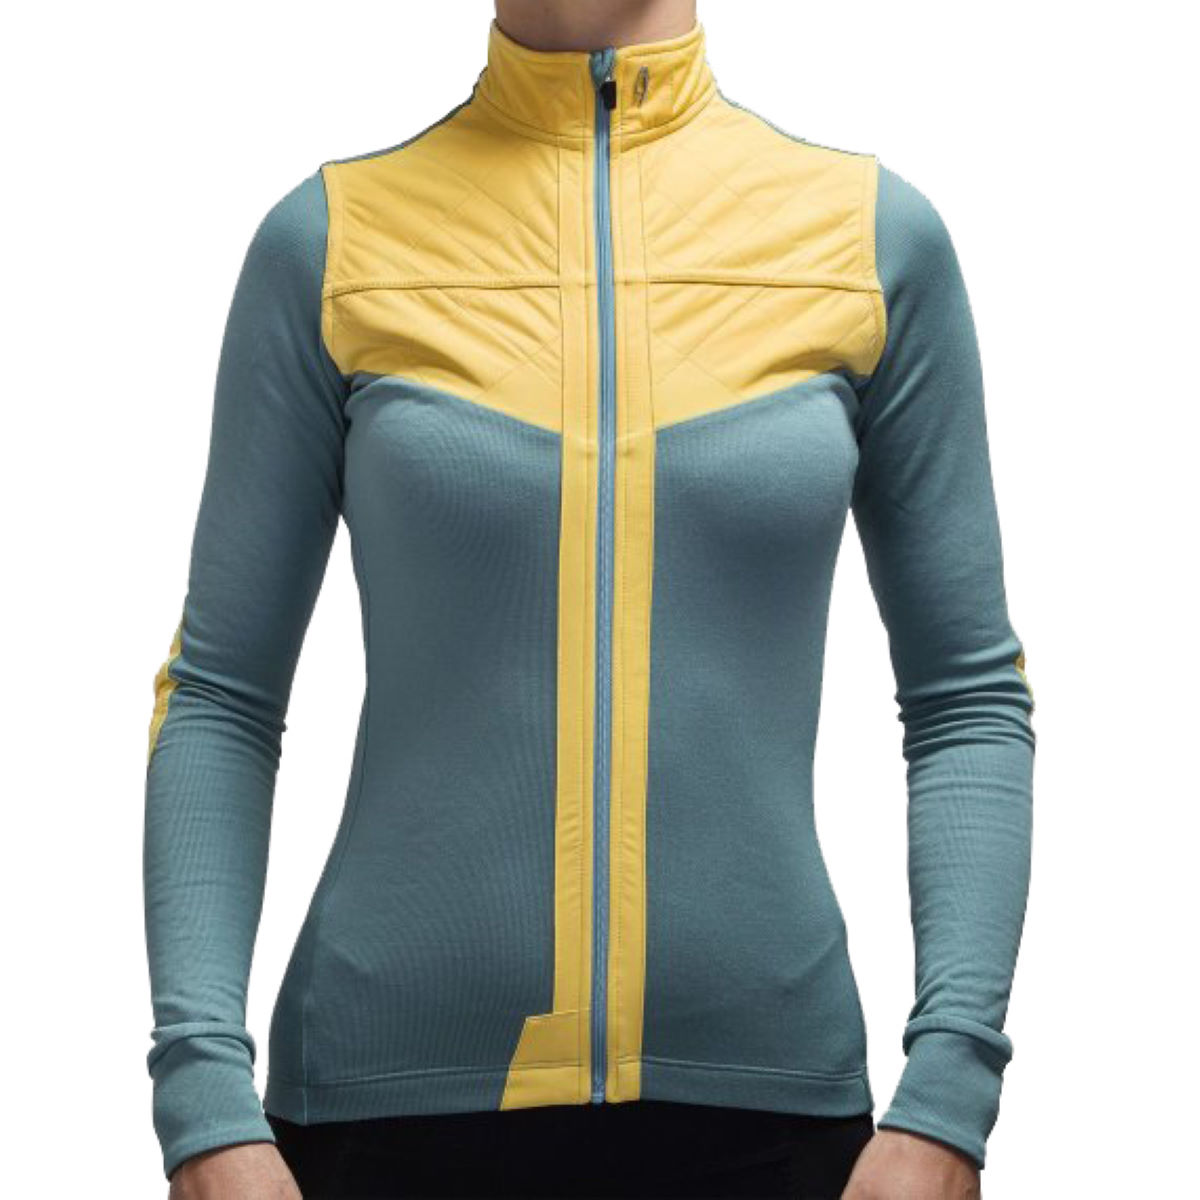 Isadore Women's Shield Long Sleeve Jersey - Maillots